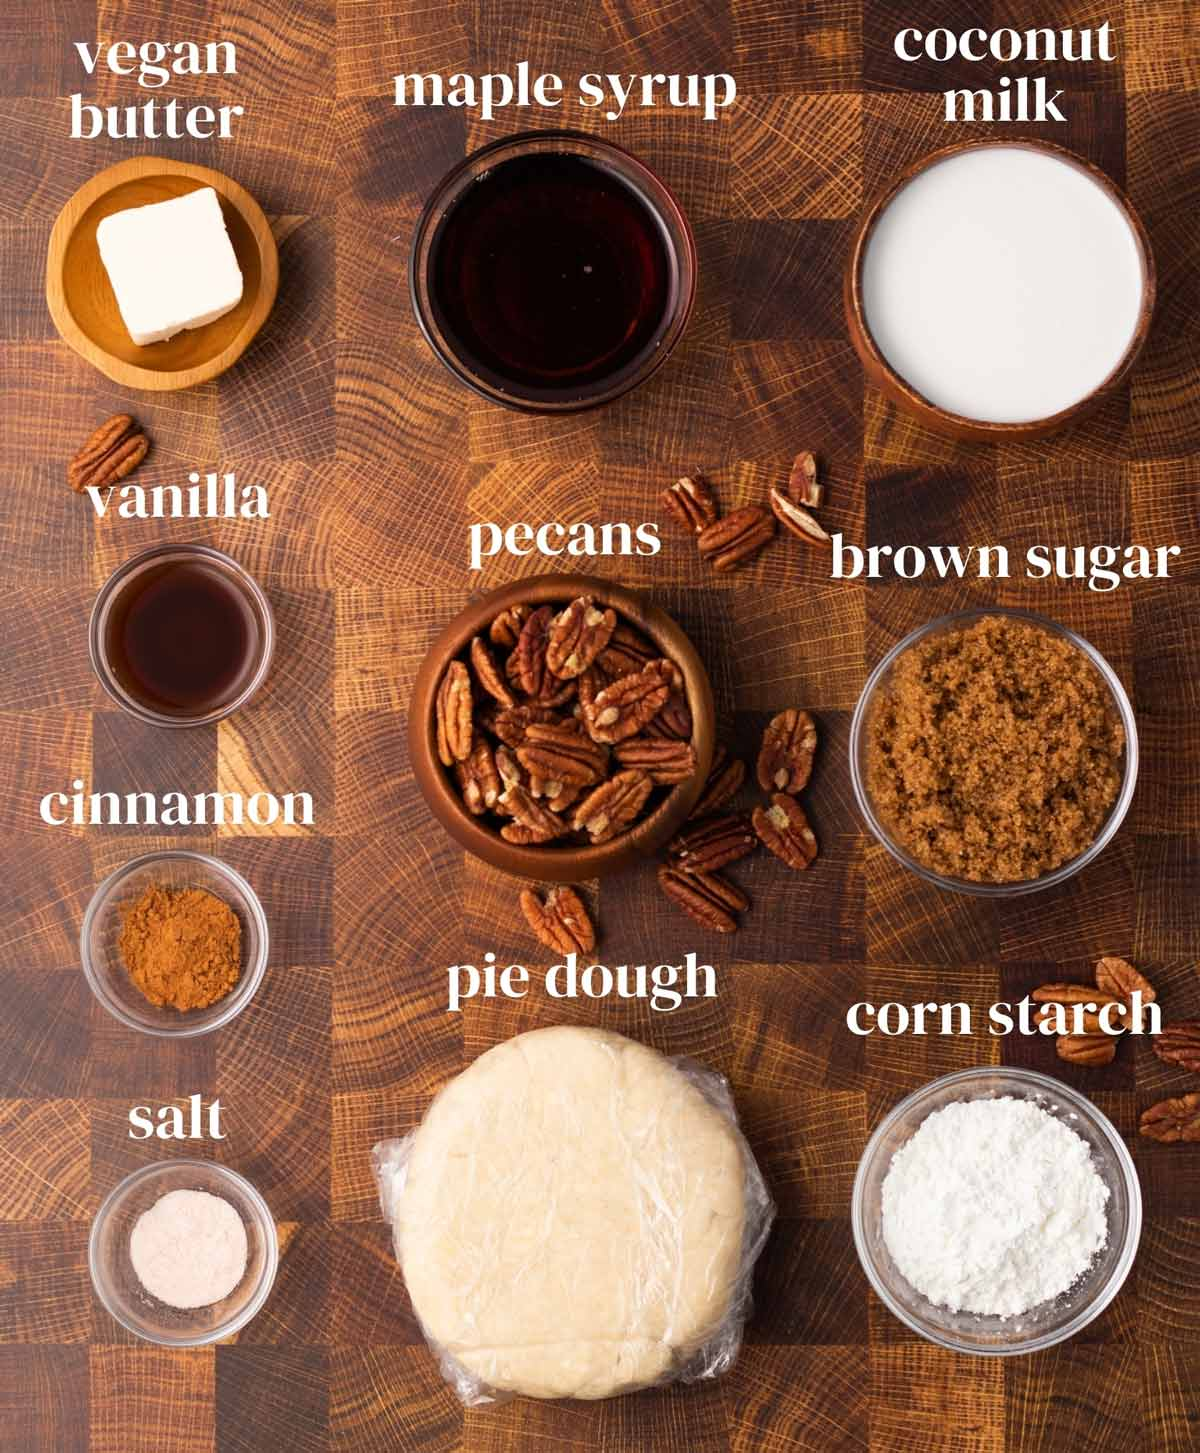 ingredients for vegan pecan pie: dough, pecans, brown sugar, salt, cinnamon, vanilla extract